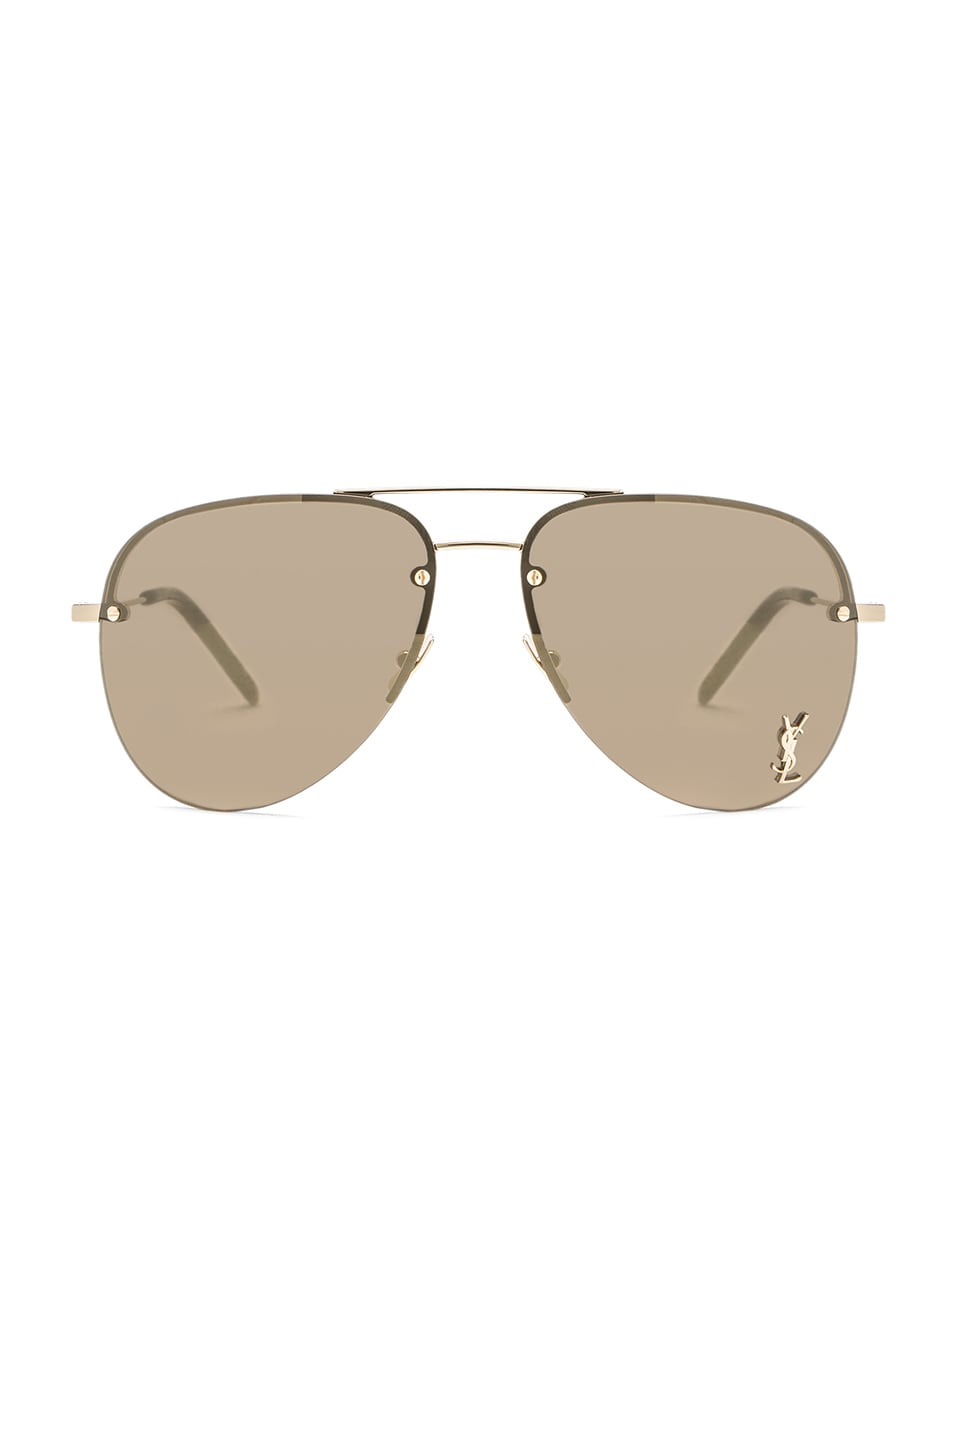 6cfe2475a2 Image 1 of Saint Laurent Classic 11 M Sunglasses in Gold   Bronze Mirror